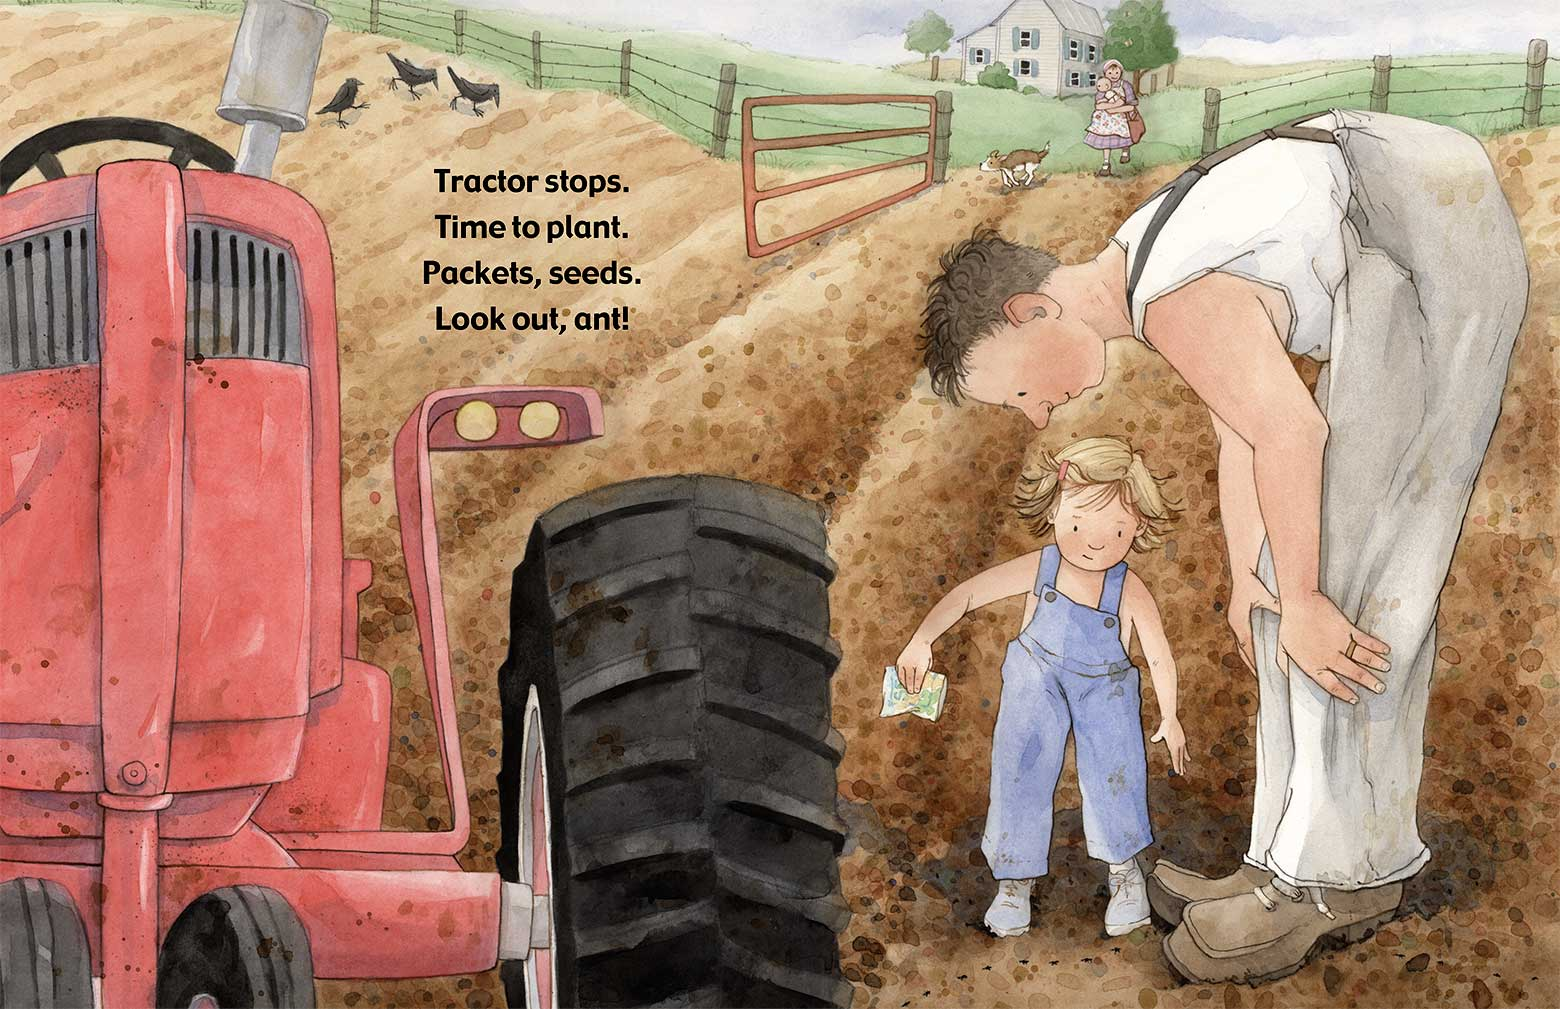 Tractor Day by Laura J. Bryant